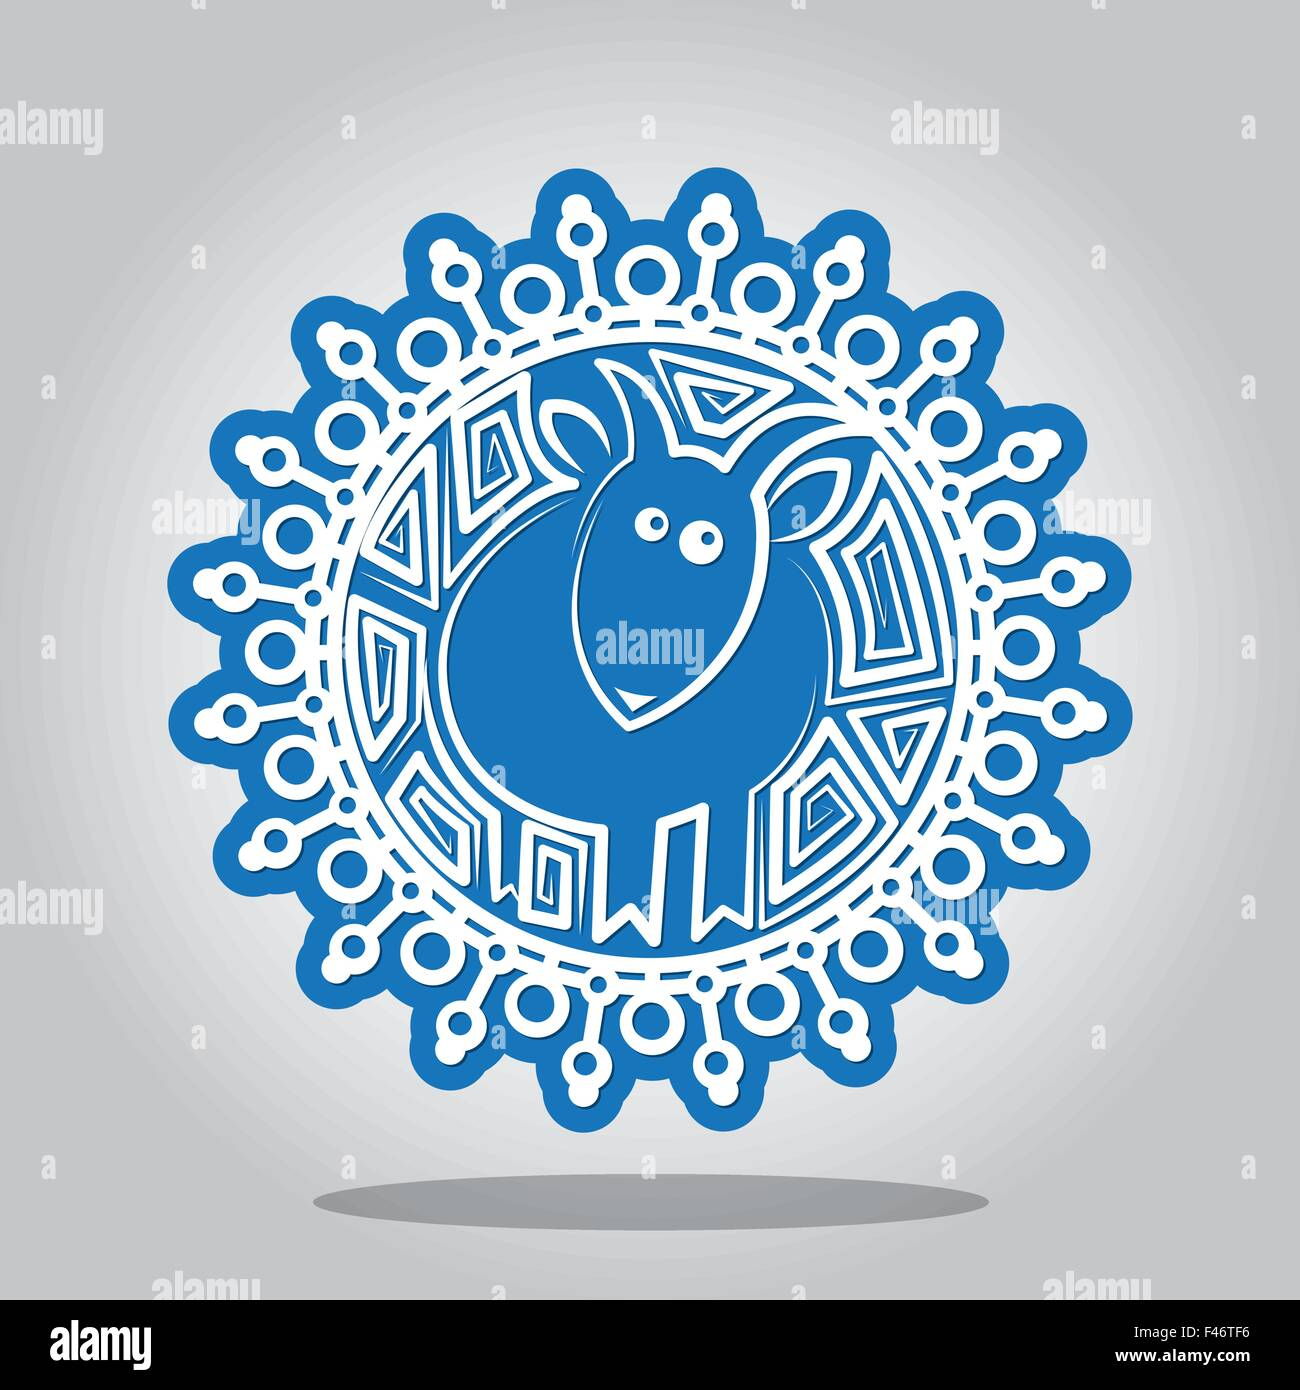 Chinese Zodiac Signs Stock Photos & Chinese Zodiac Signs Stock ...